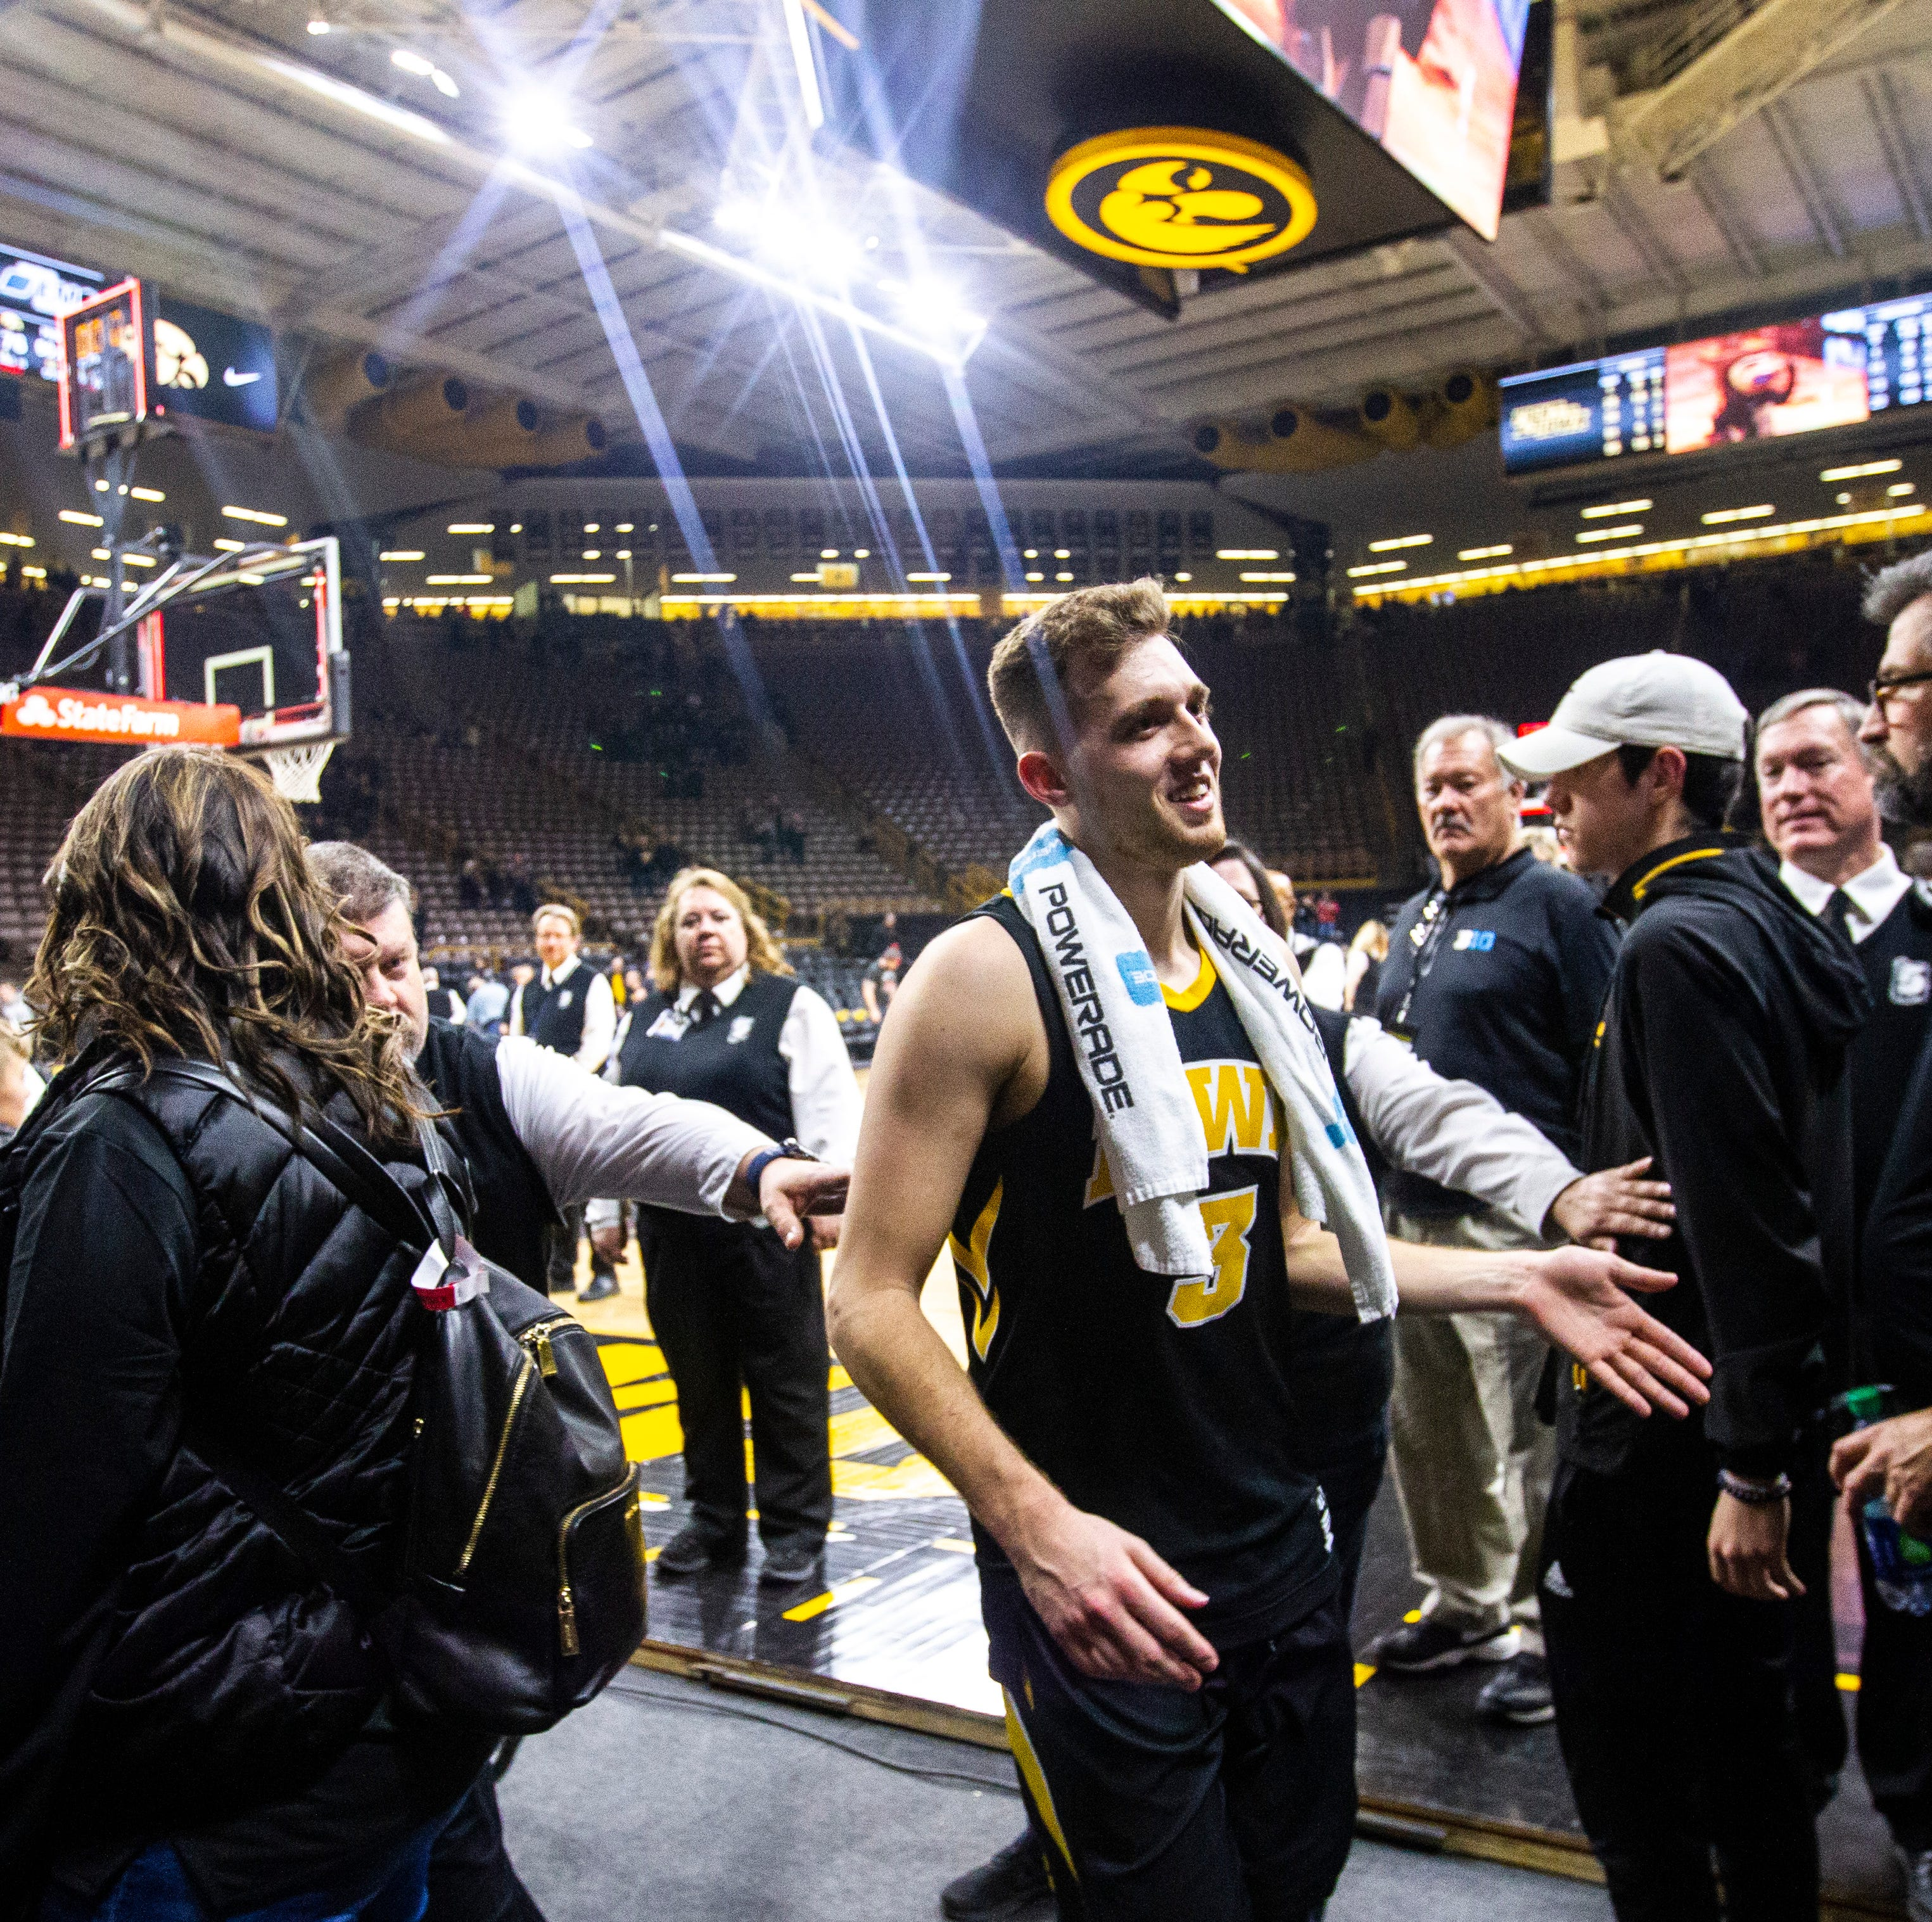 Iowa guard Jordan Bohannon uses Steph Curry as example (and not in way you think)